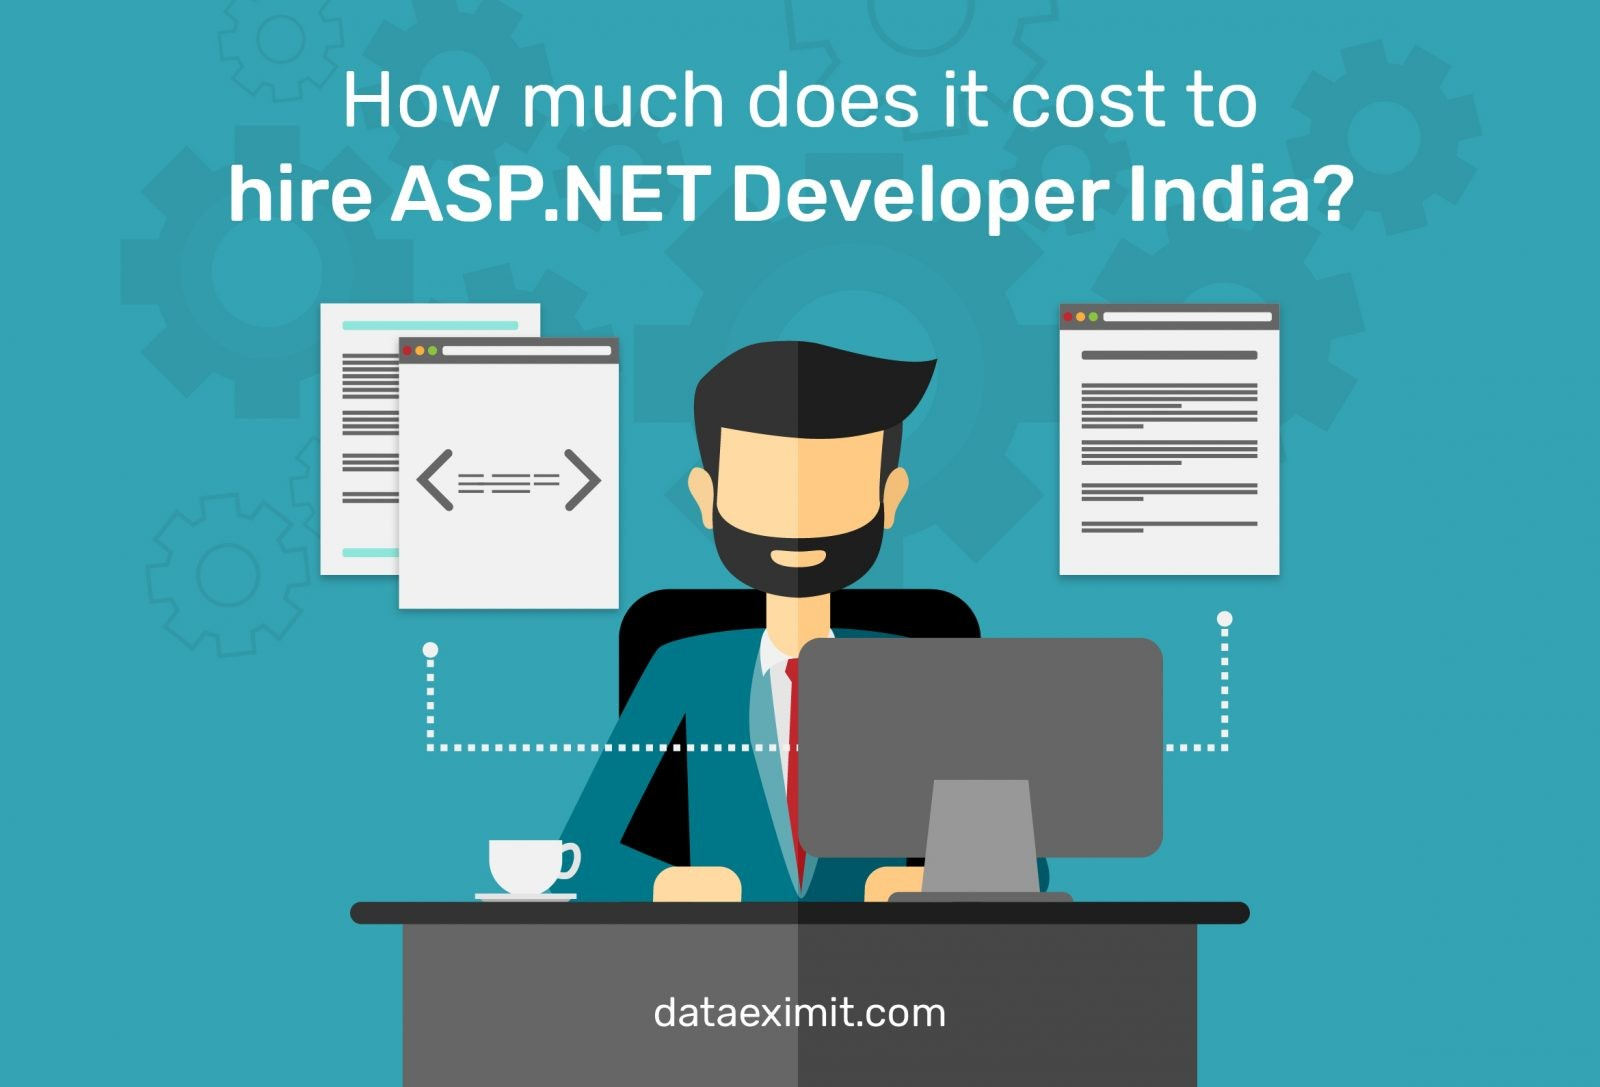 How Much Does It Cost to Hire ASP.NET Developer India?